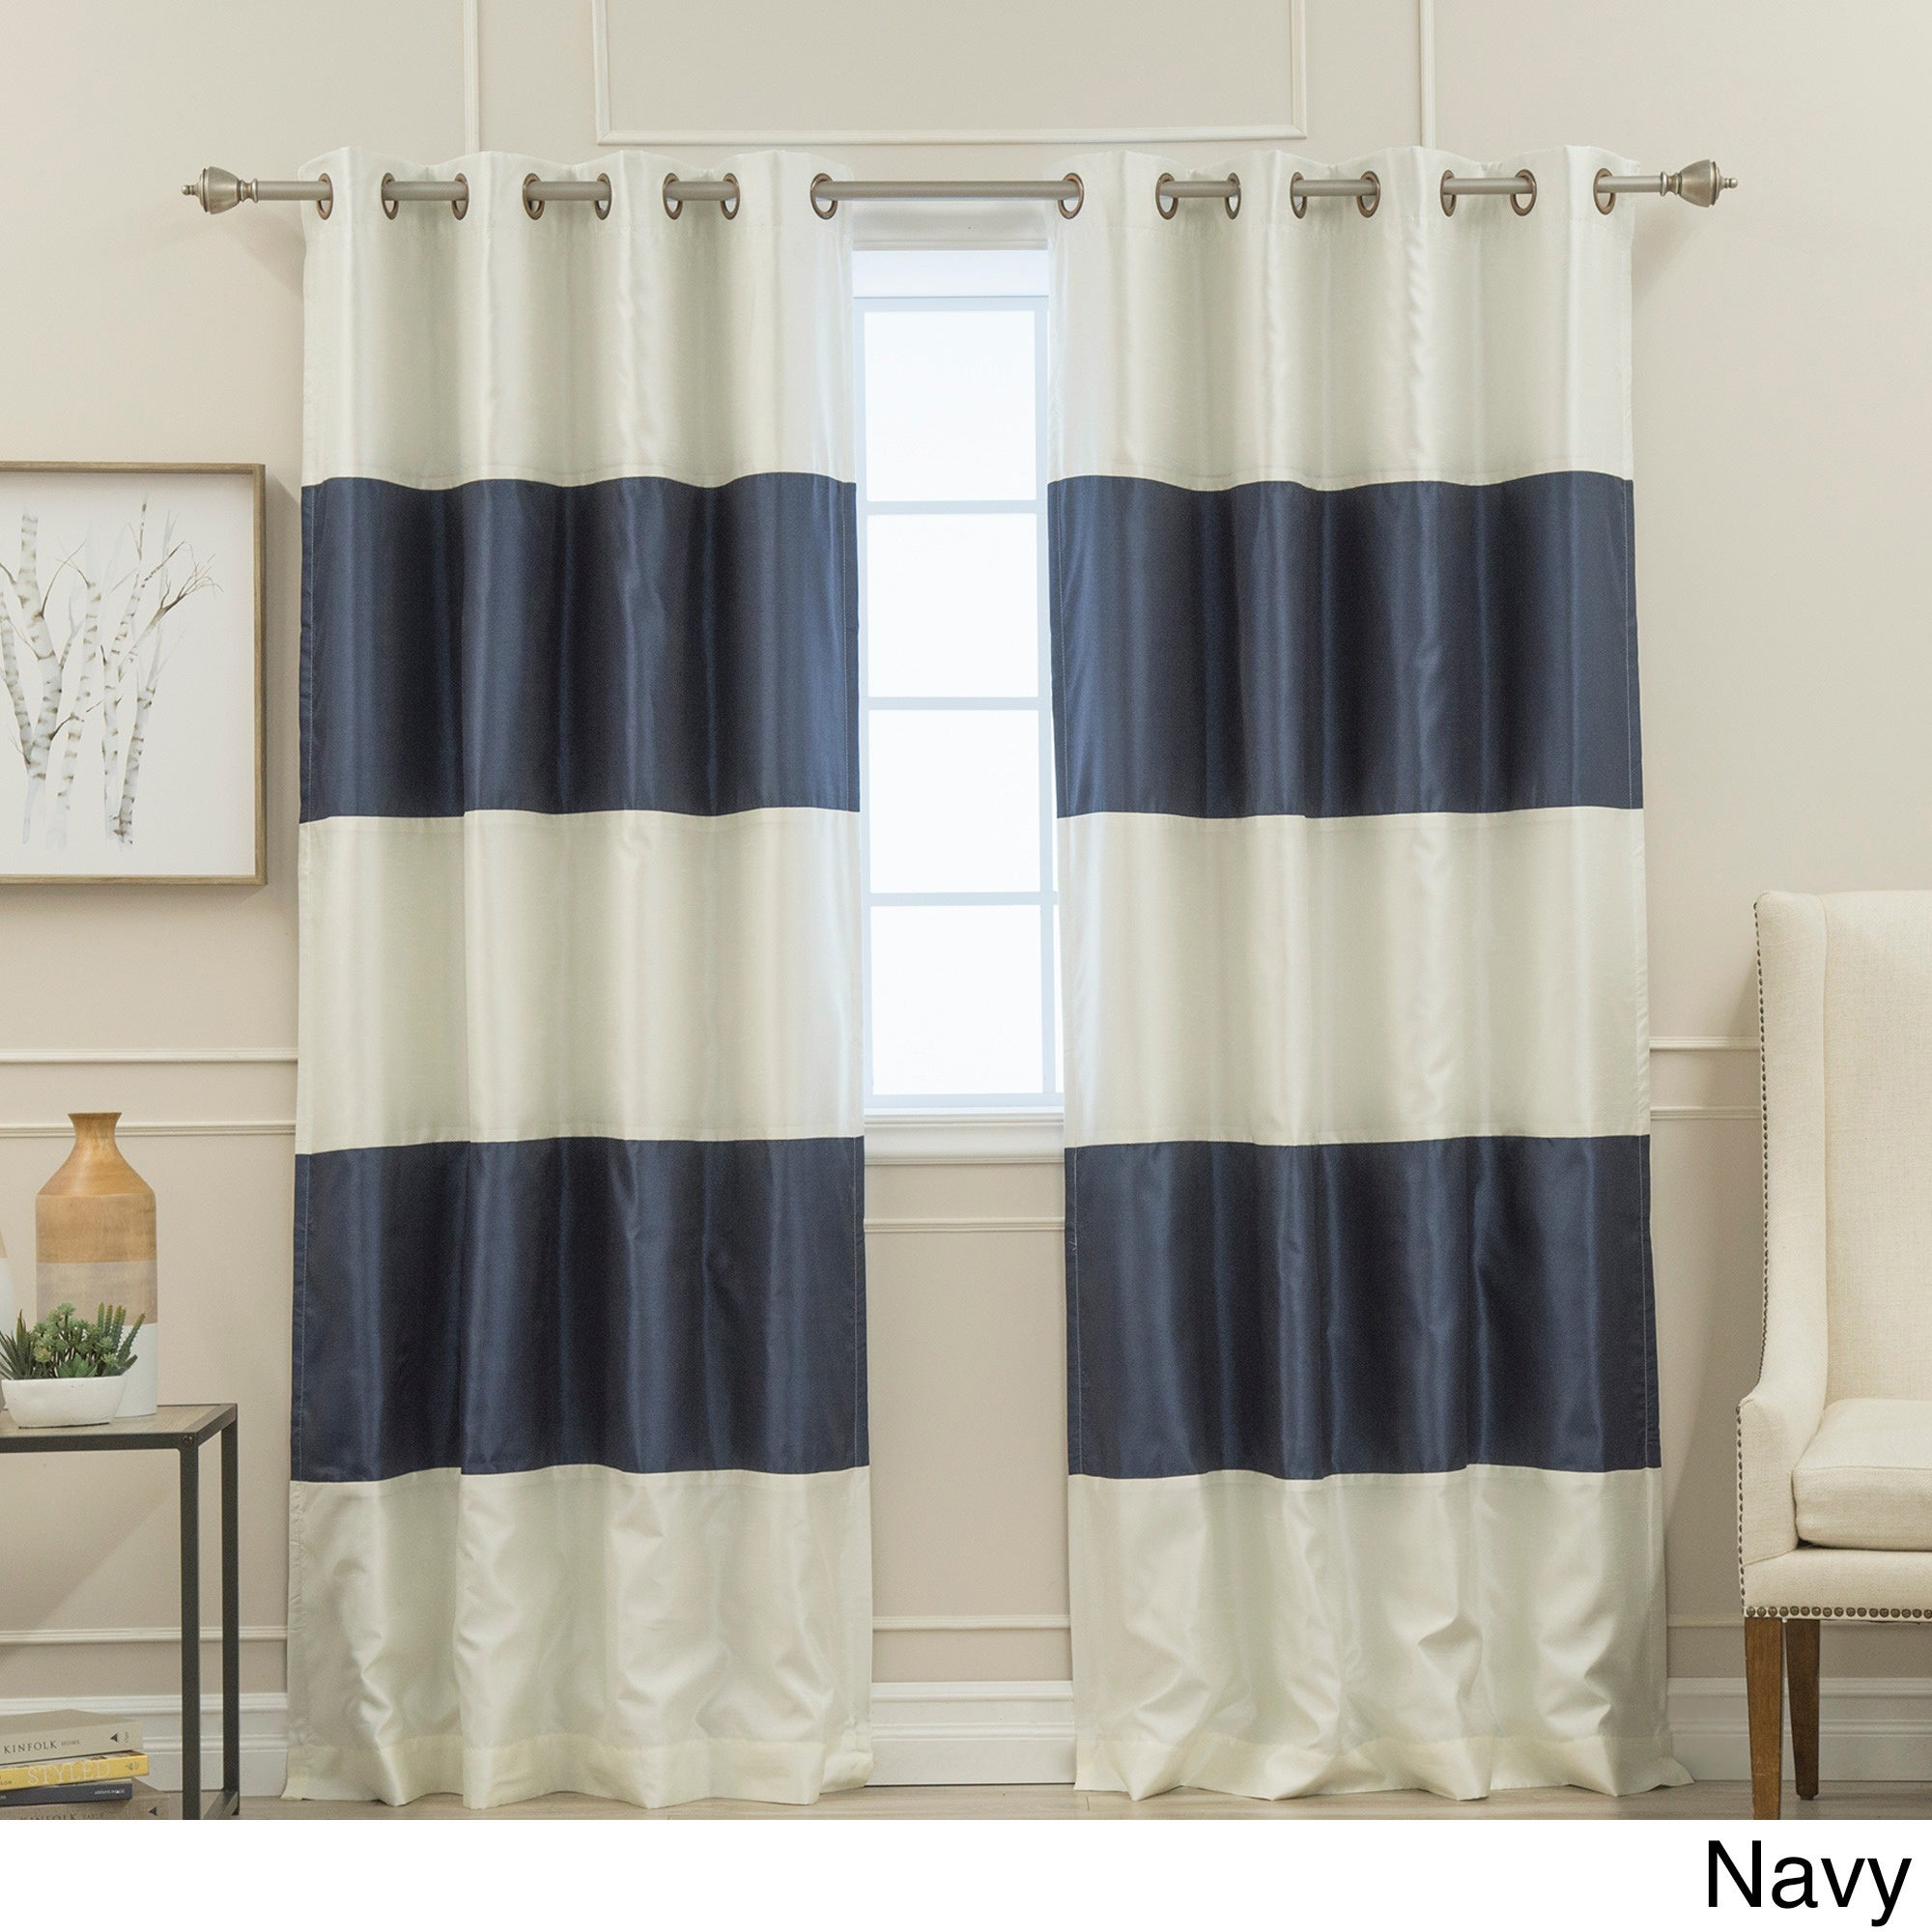 drapes pocket top curtains treatments rod blackout hei more home window store qlt darcy panel grommet valance bed category wid decor curtain styles